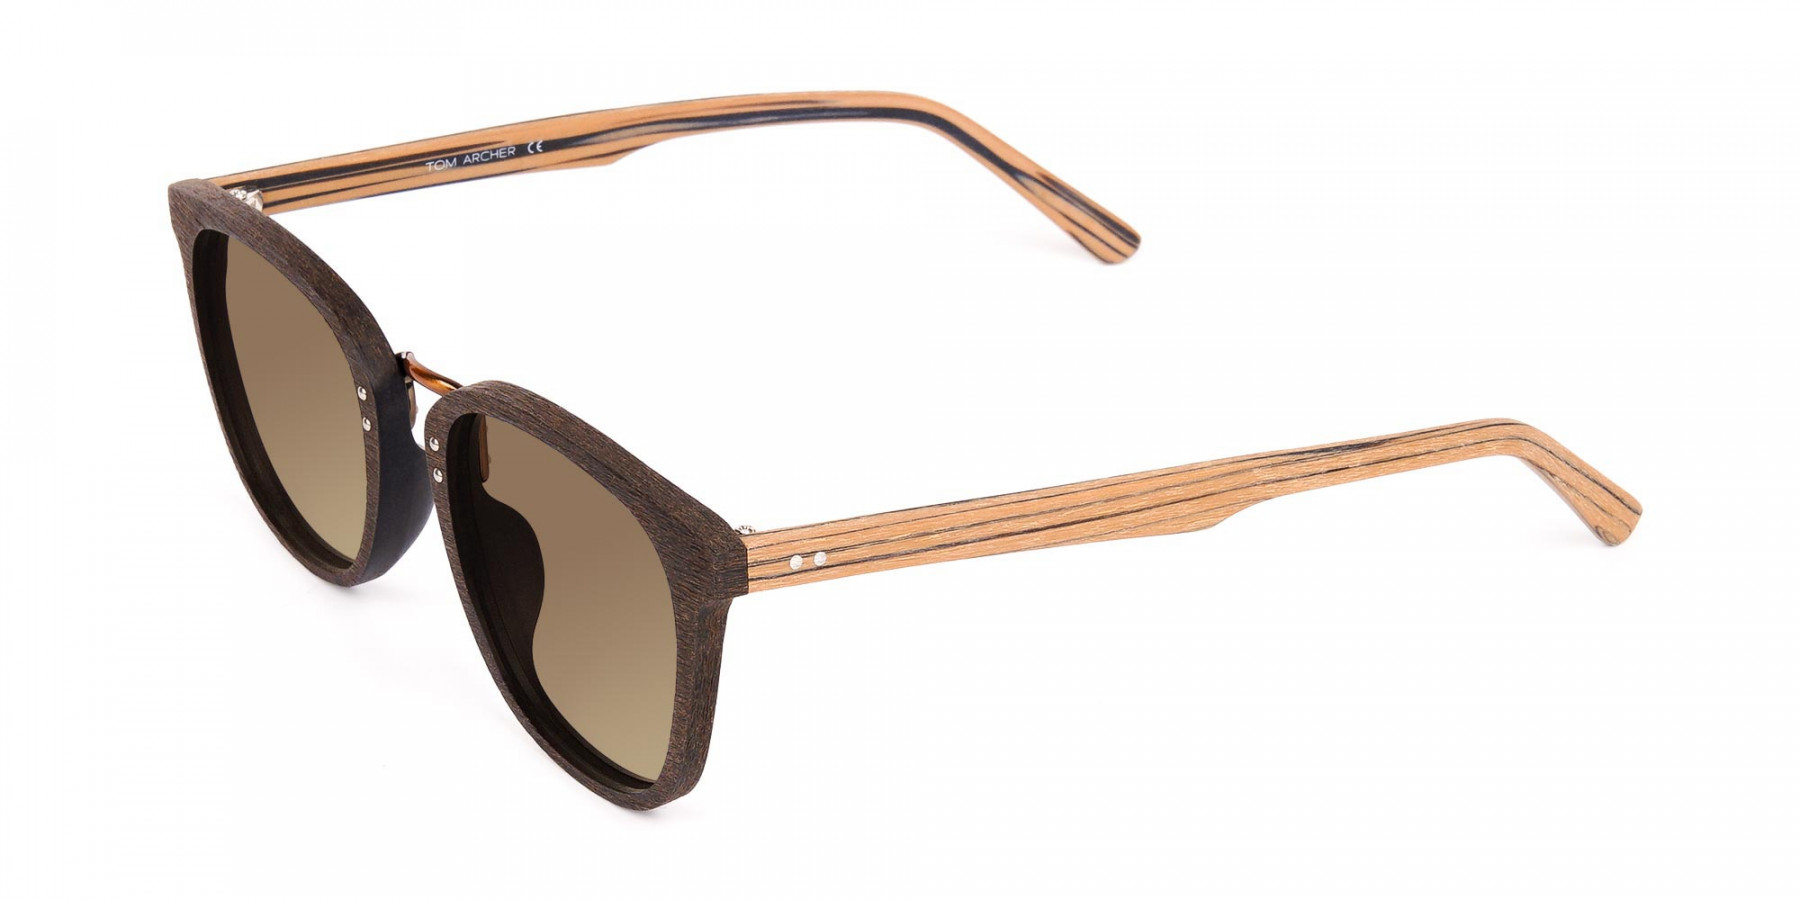 Wooden-Brown-Square-Sunglasses-with-Brown-Tint-3